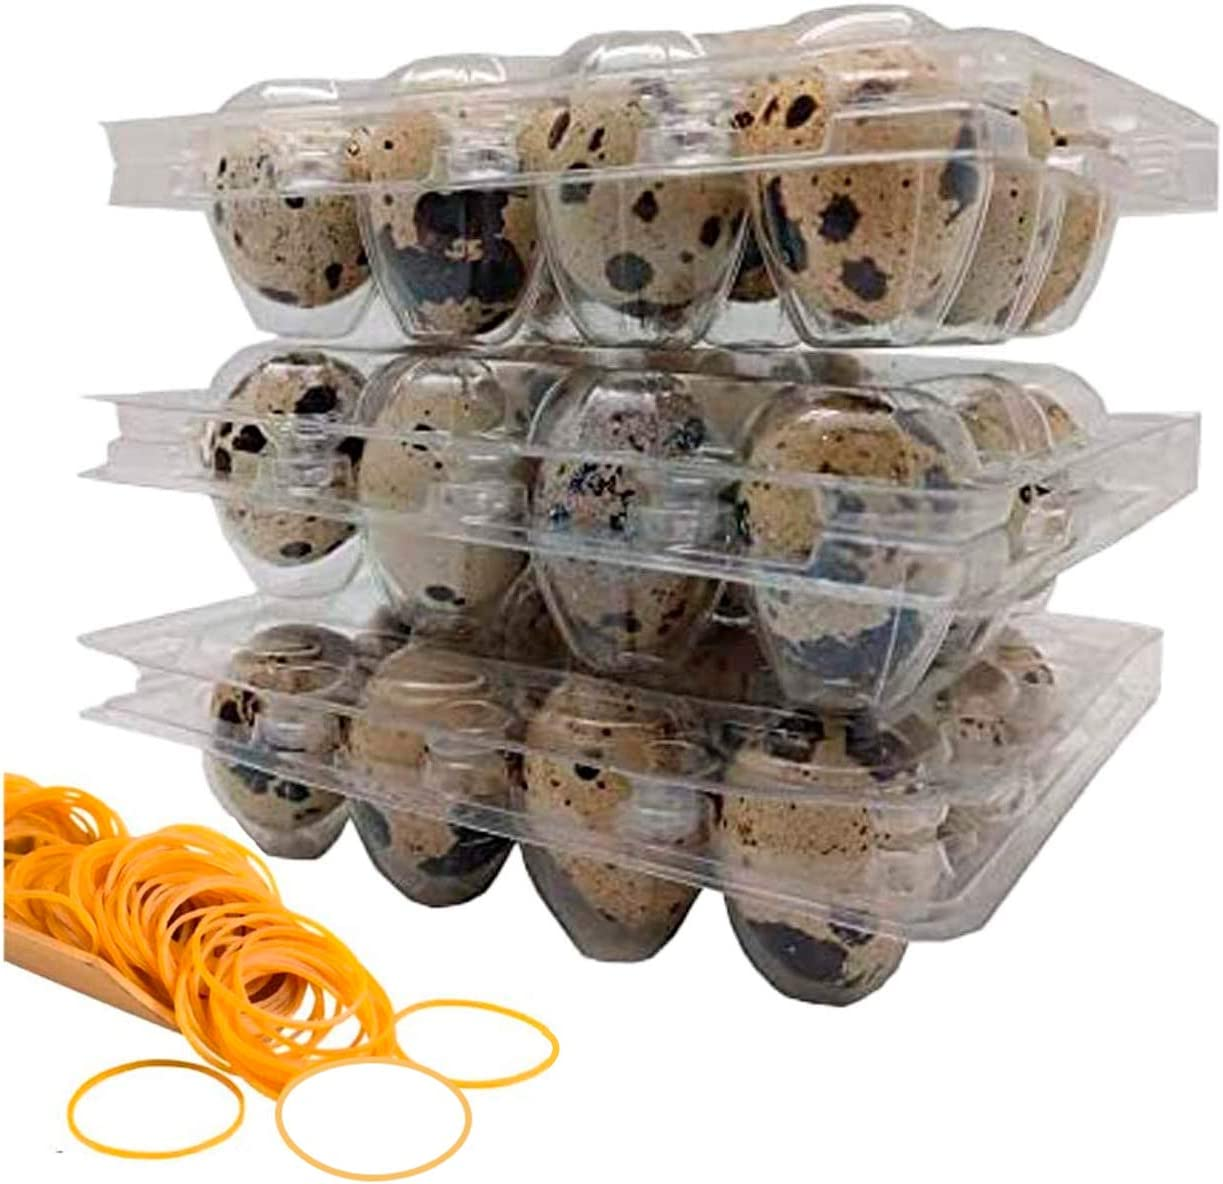 100 Clear 12 Cavity Quail Egg Cartons by Quail Egg Cartons with 100 Pcs Rubber Bands - Bulk Carton for Dozens of Small Eggs, Quail, Pheasant, or Grouse, Cartons Only No Eggs Included…